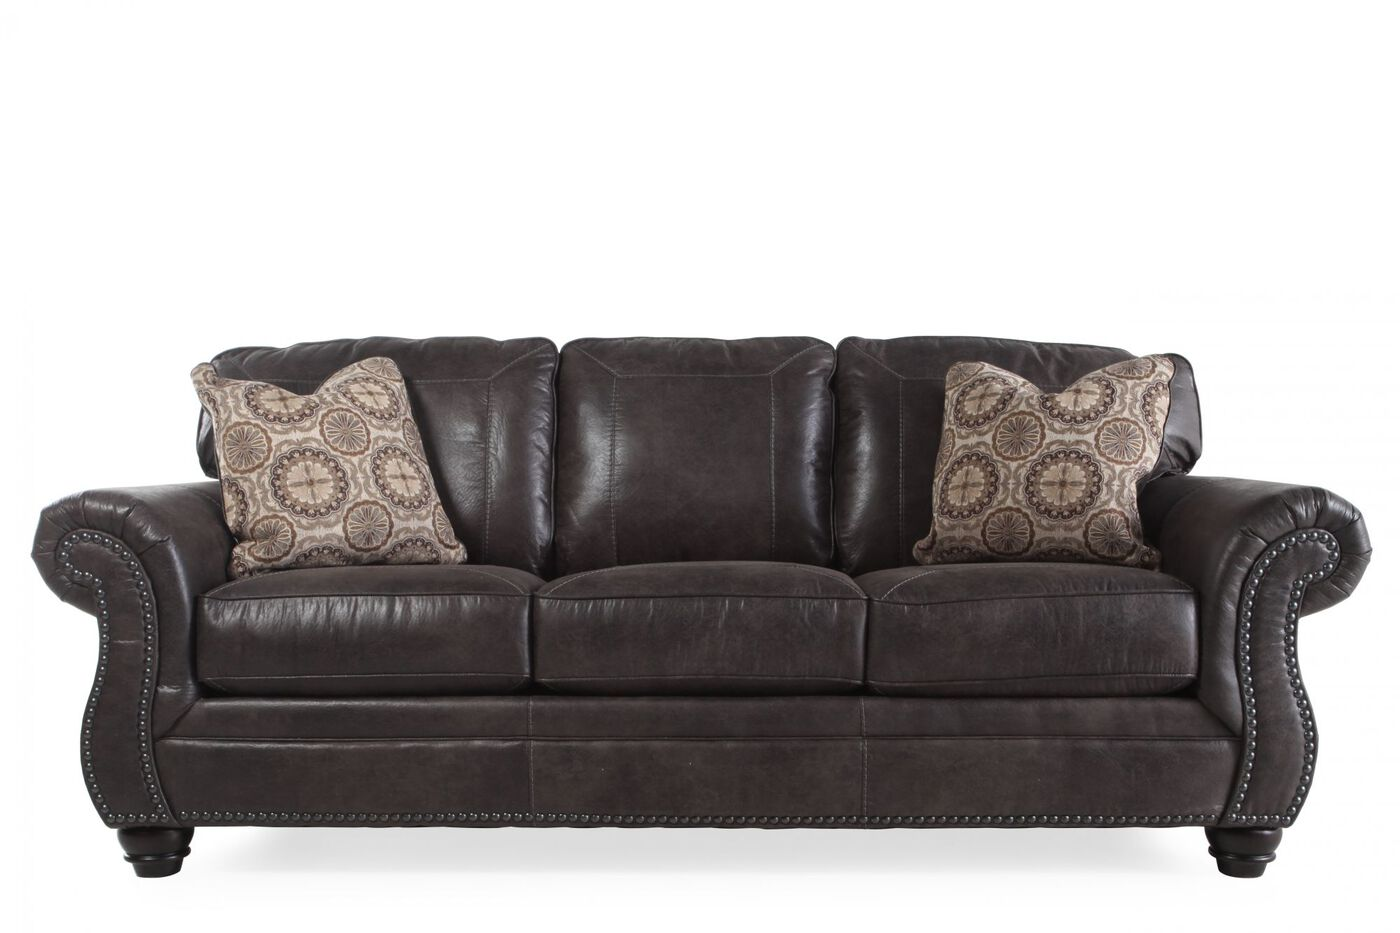 Breville Sofa In Charcoal Mathis Brothers